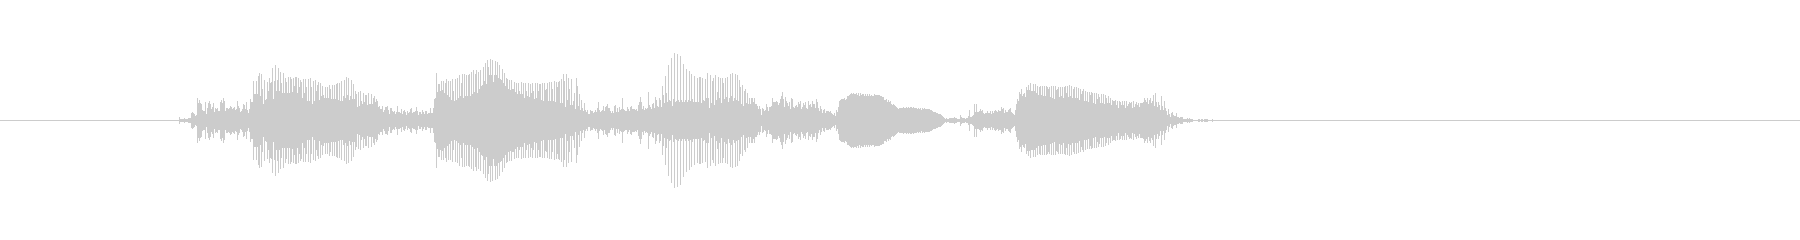 Voice is being delivered's unreproduced waveform